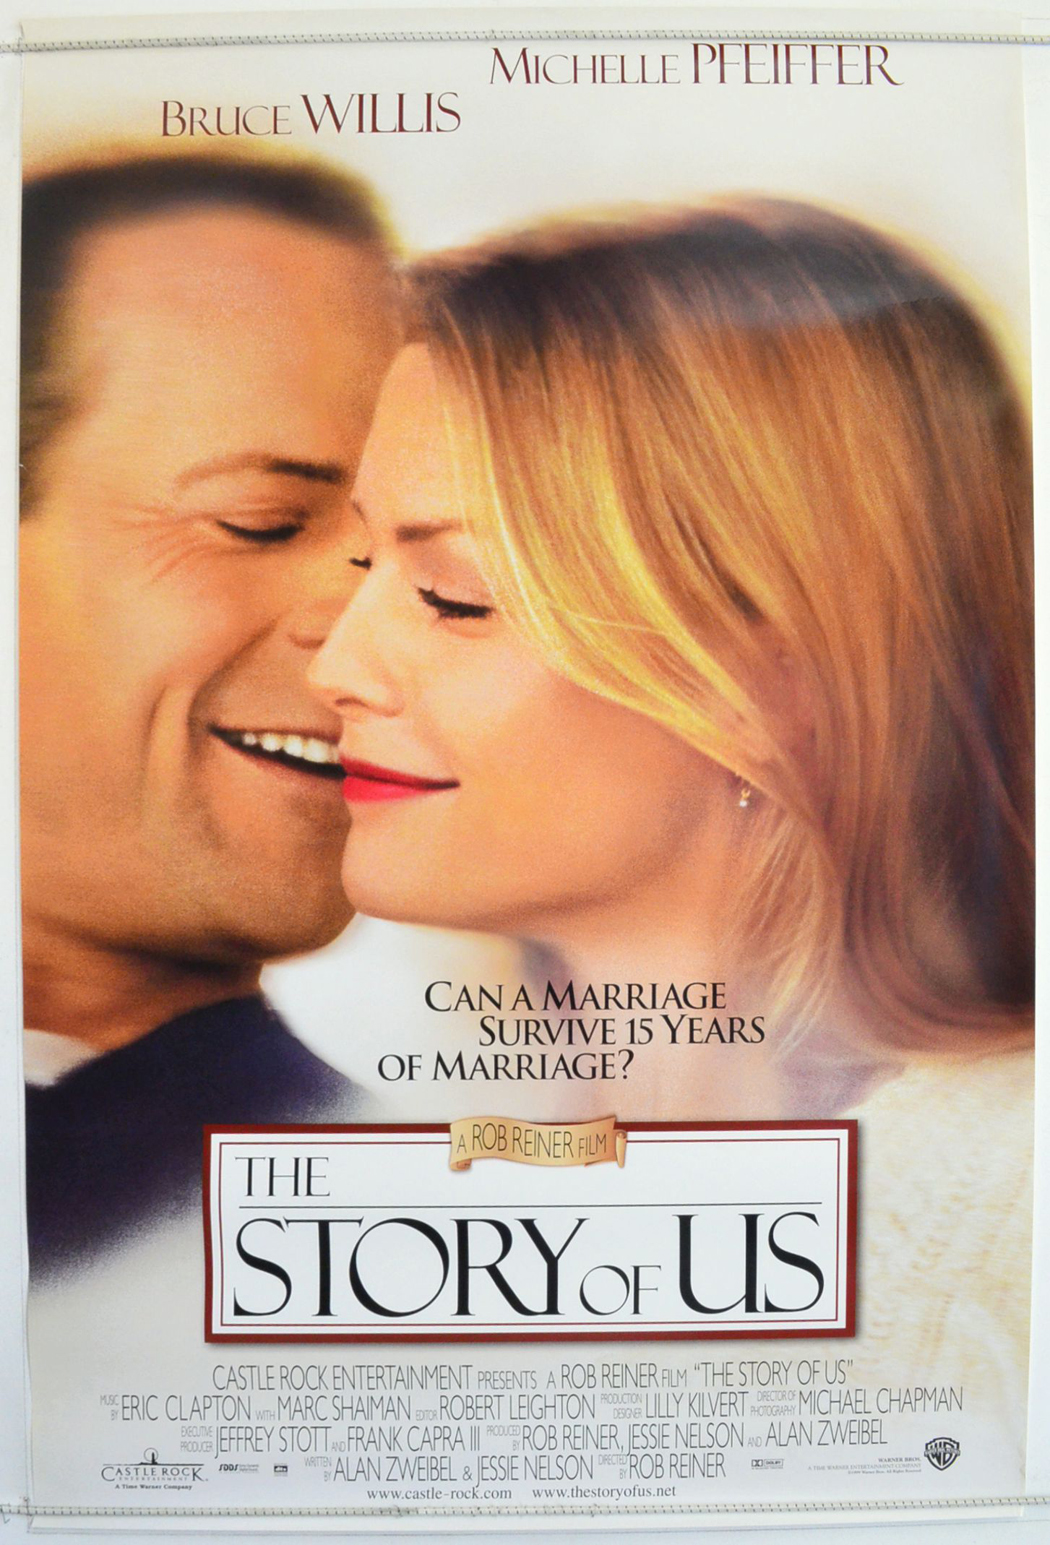 Story Of Us (The) - Original Cinema Movie Poster From